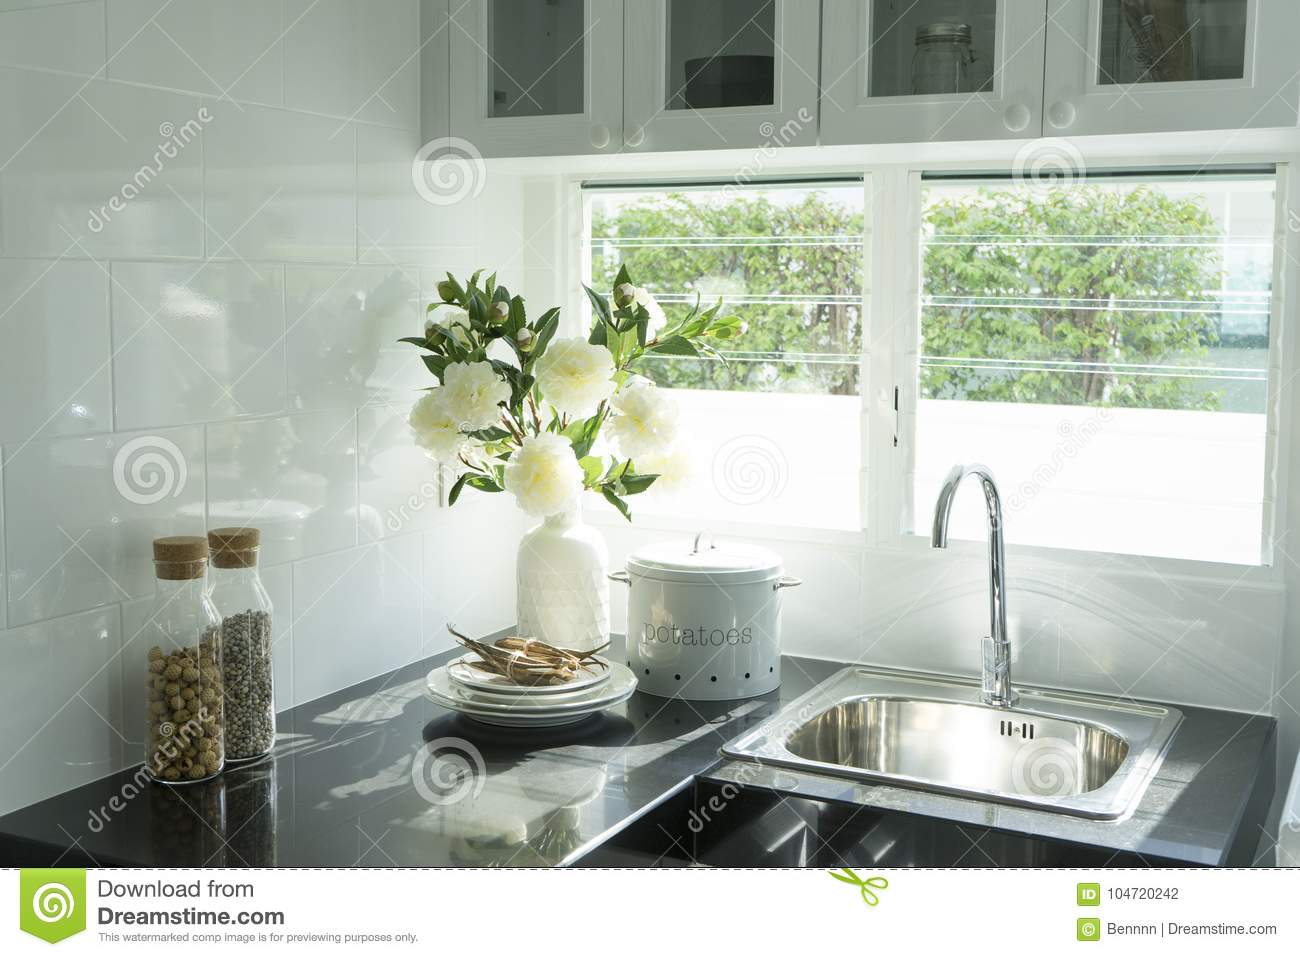 Modern Kitchen With White Worktop Sink Stock Photo Image Of Flat